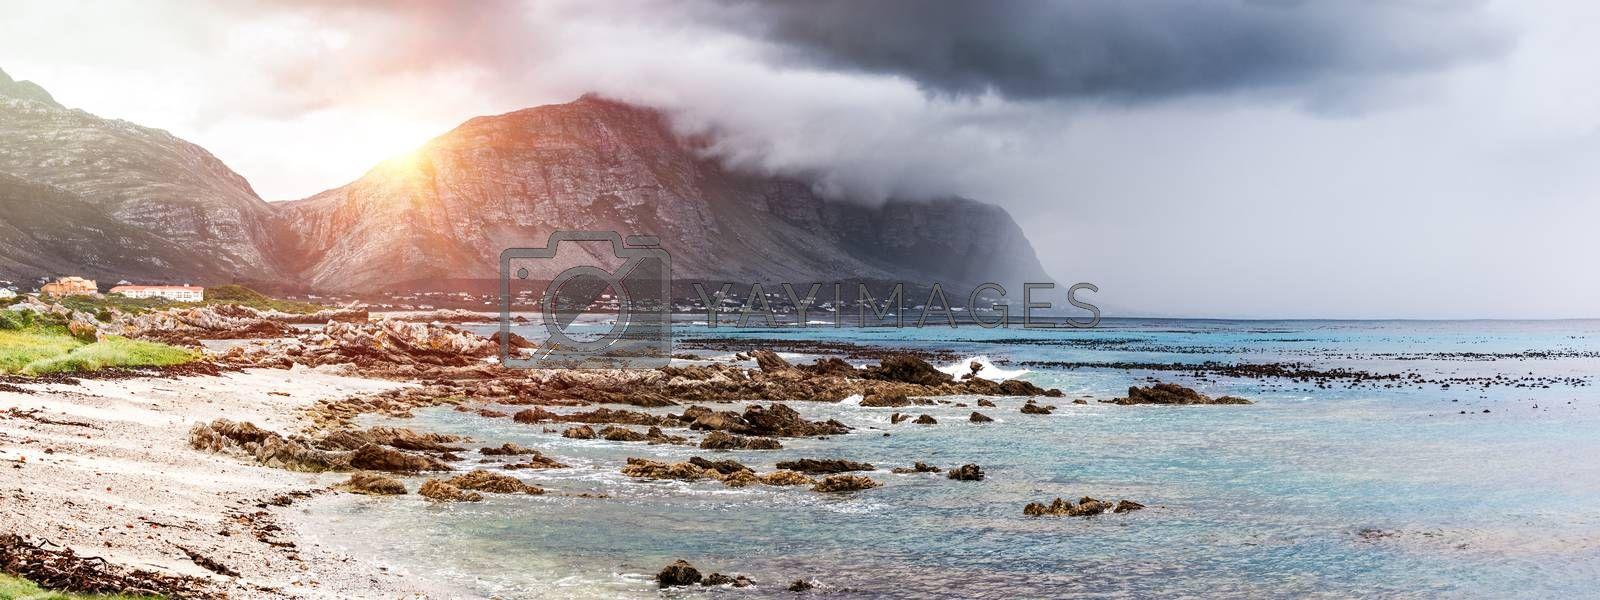 Beautiful landscape of Betty's Bay, mountains in the fog near seashore, amazing panoramic view, beauty of wild nature, Atlantic Ocean, South Africa